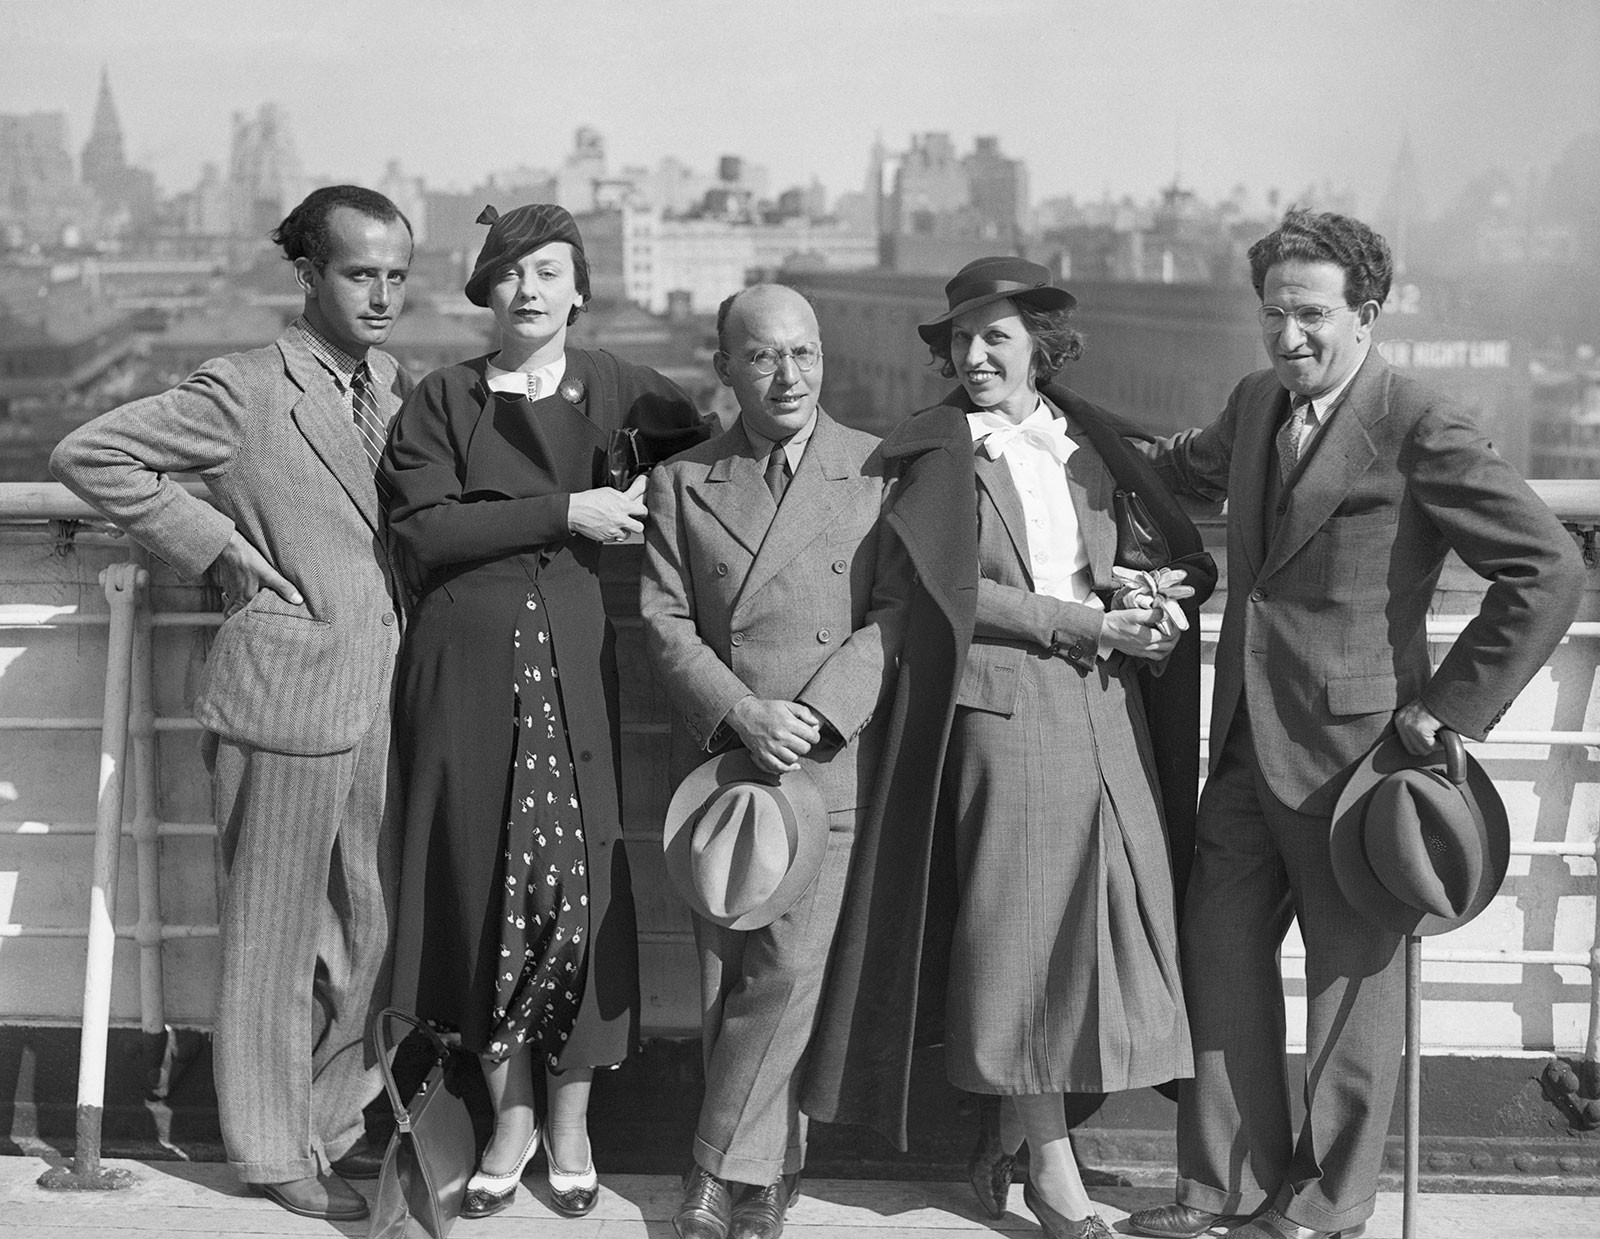 From left to right: Francesco and Eleonora Mendelssohn with Kurt Weil, Lotte Lenya, and theater producer Meyer Wolf Weisgal upon arriving in New York on October 10th, 1935 © corbis images